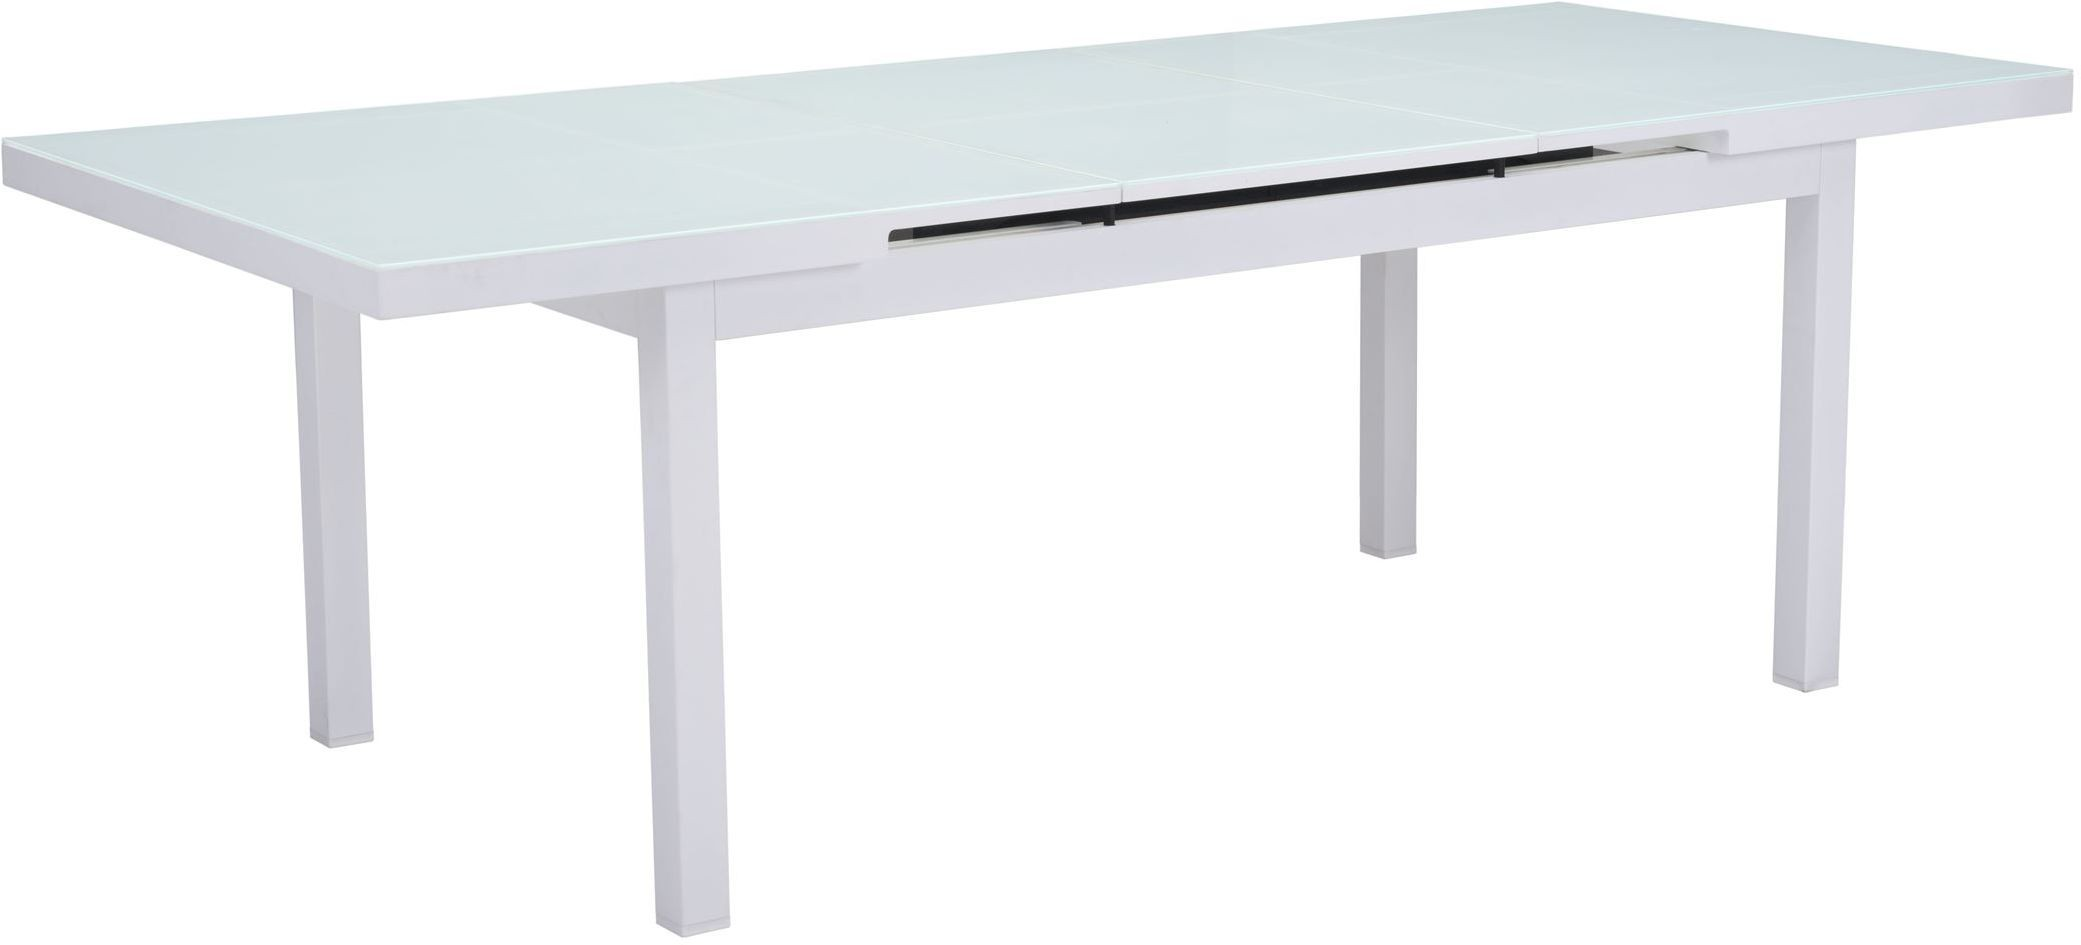 White Dining Table Extendable Mayakoba White Extendable Dining Table From Zuo Coleman